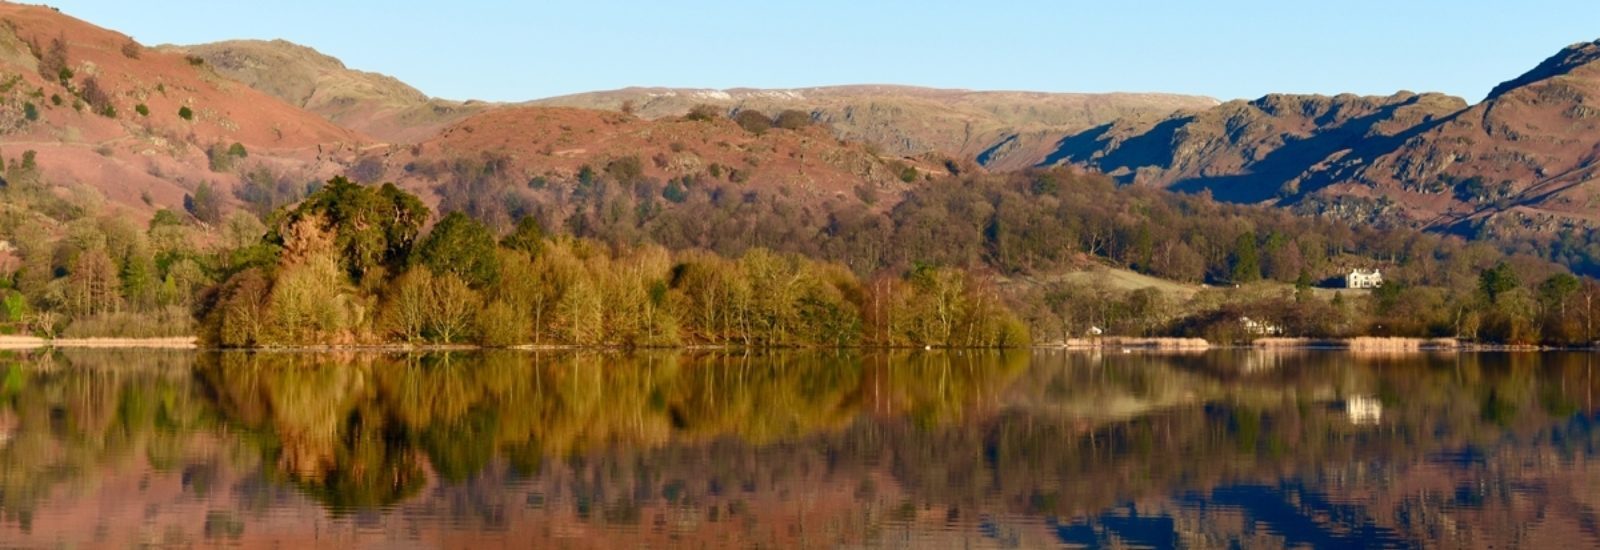 The Lake District in the Spring